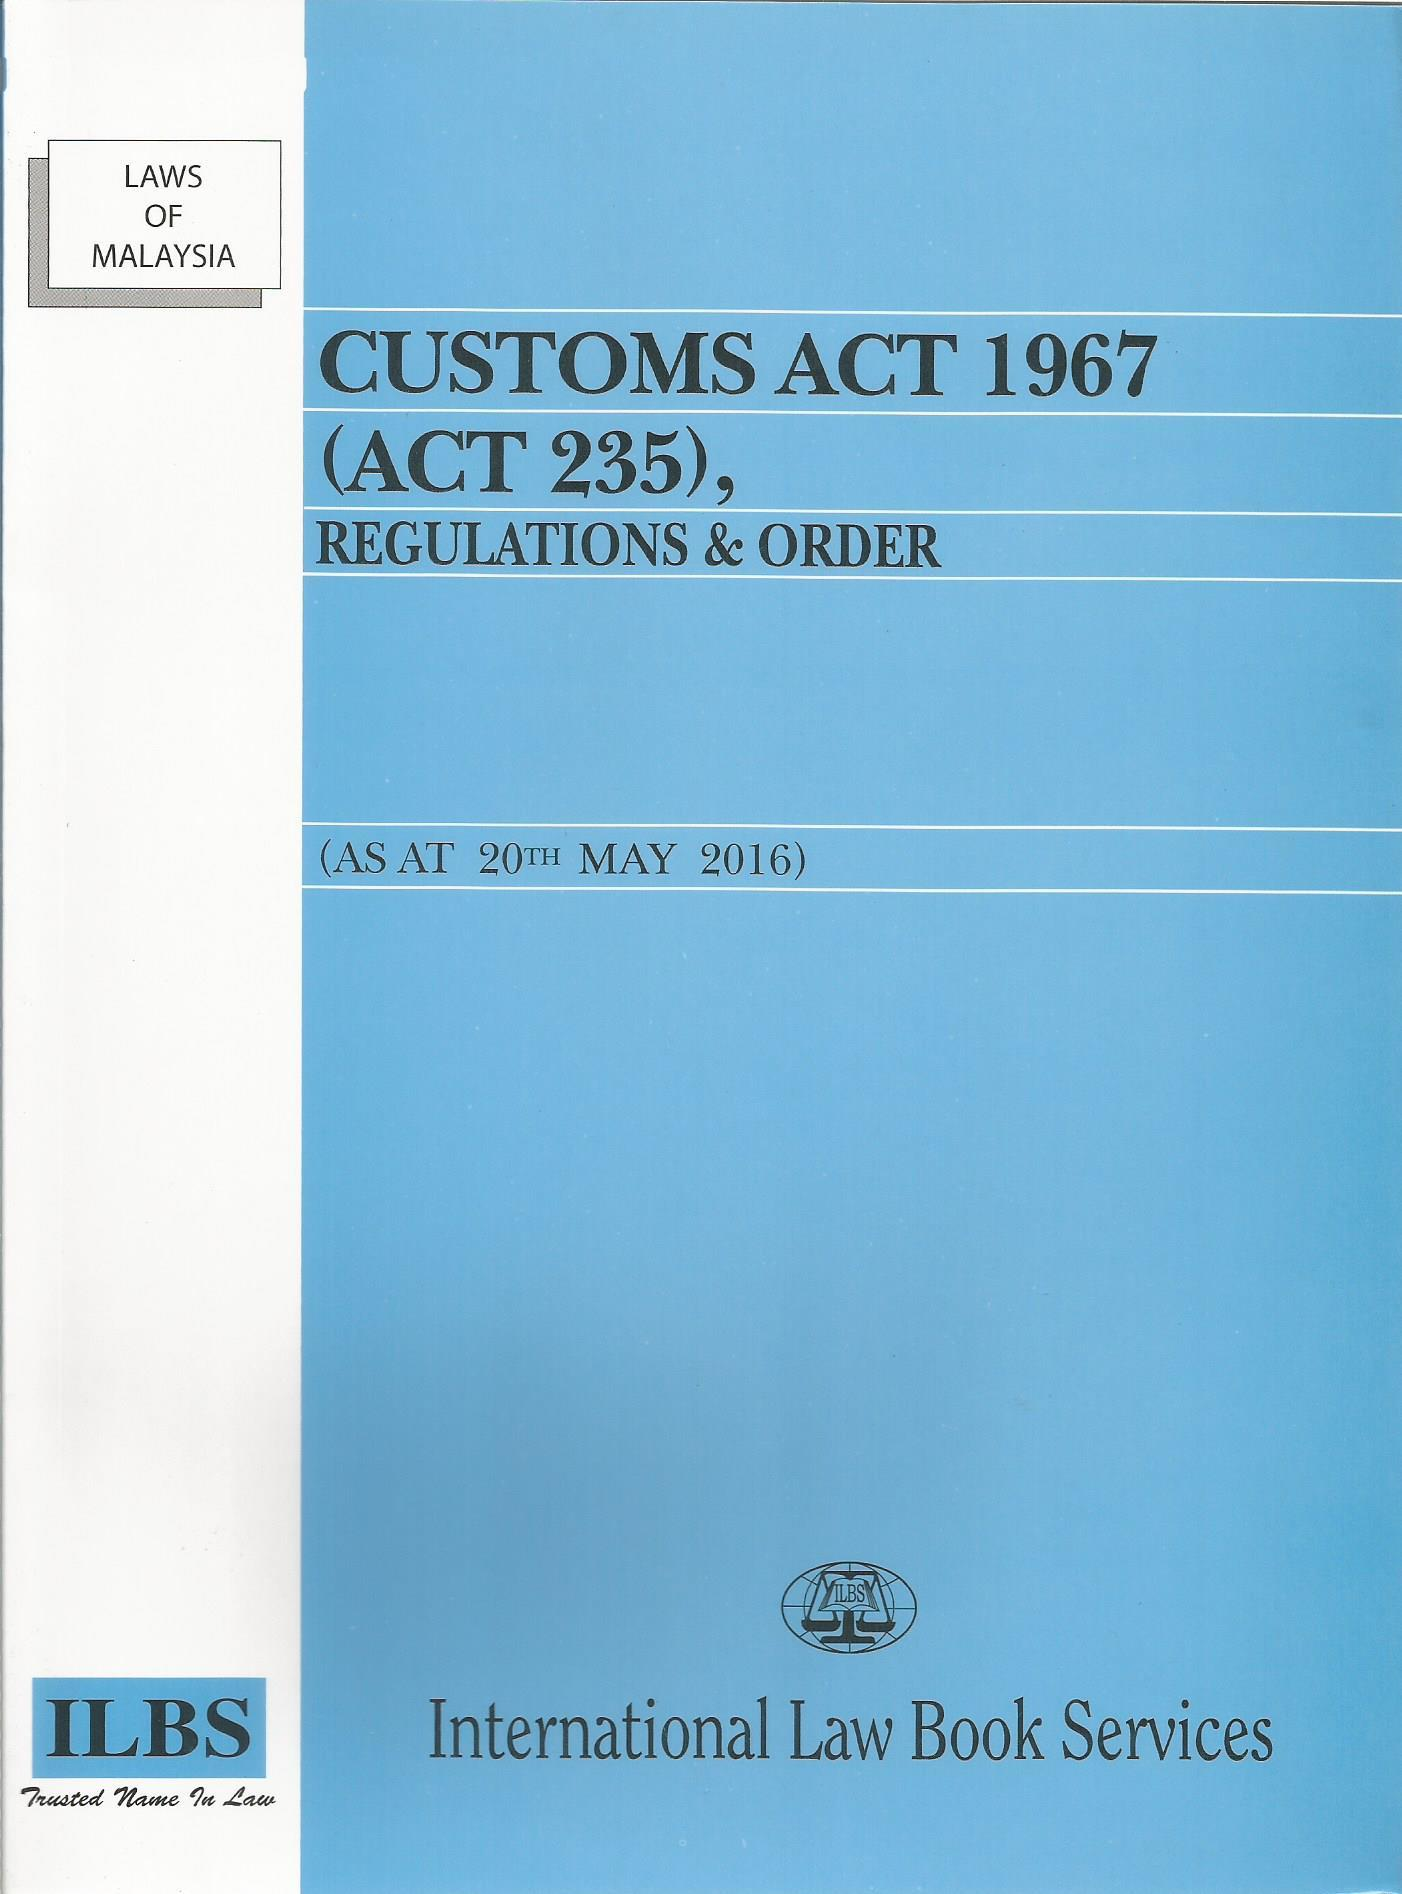 customs act rm29.5 0.40001.jpg